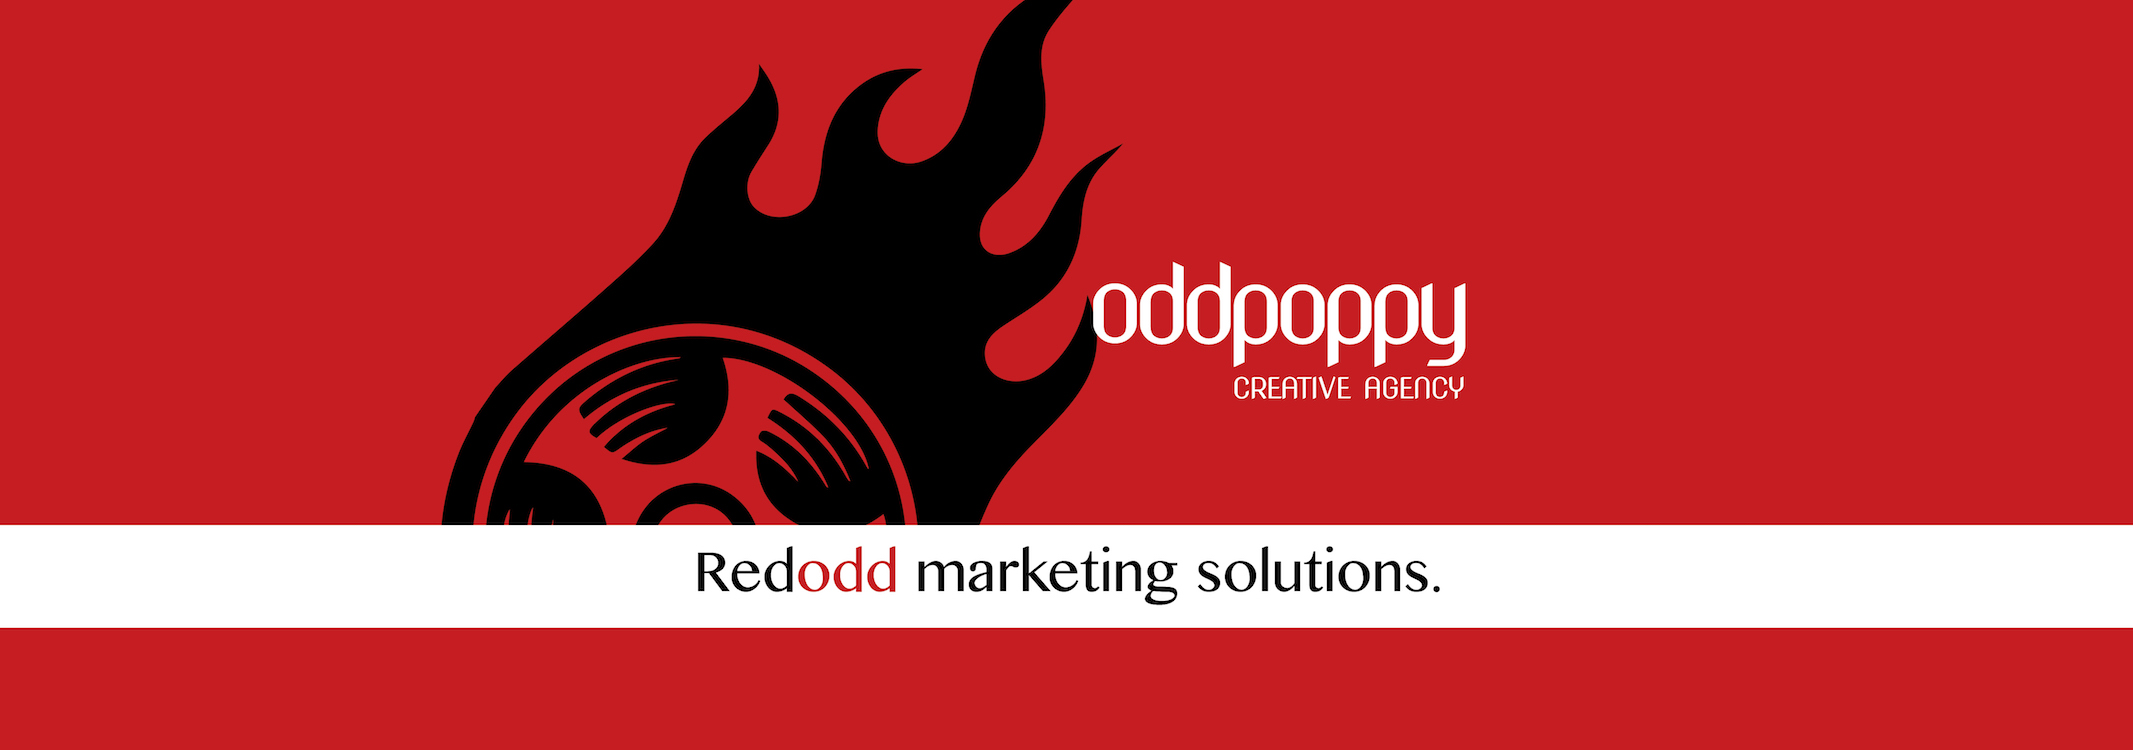 Odd Poppy Creative | Advertising Agency | Johannesburg | Cape Town6